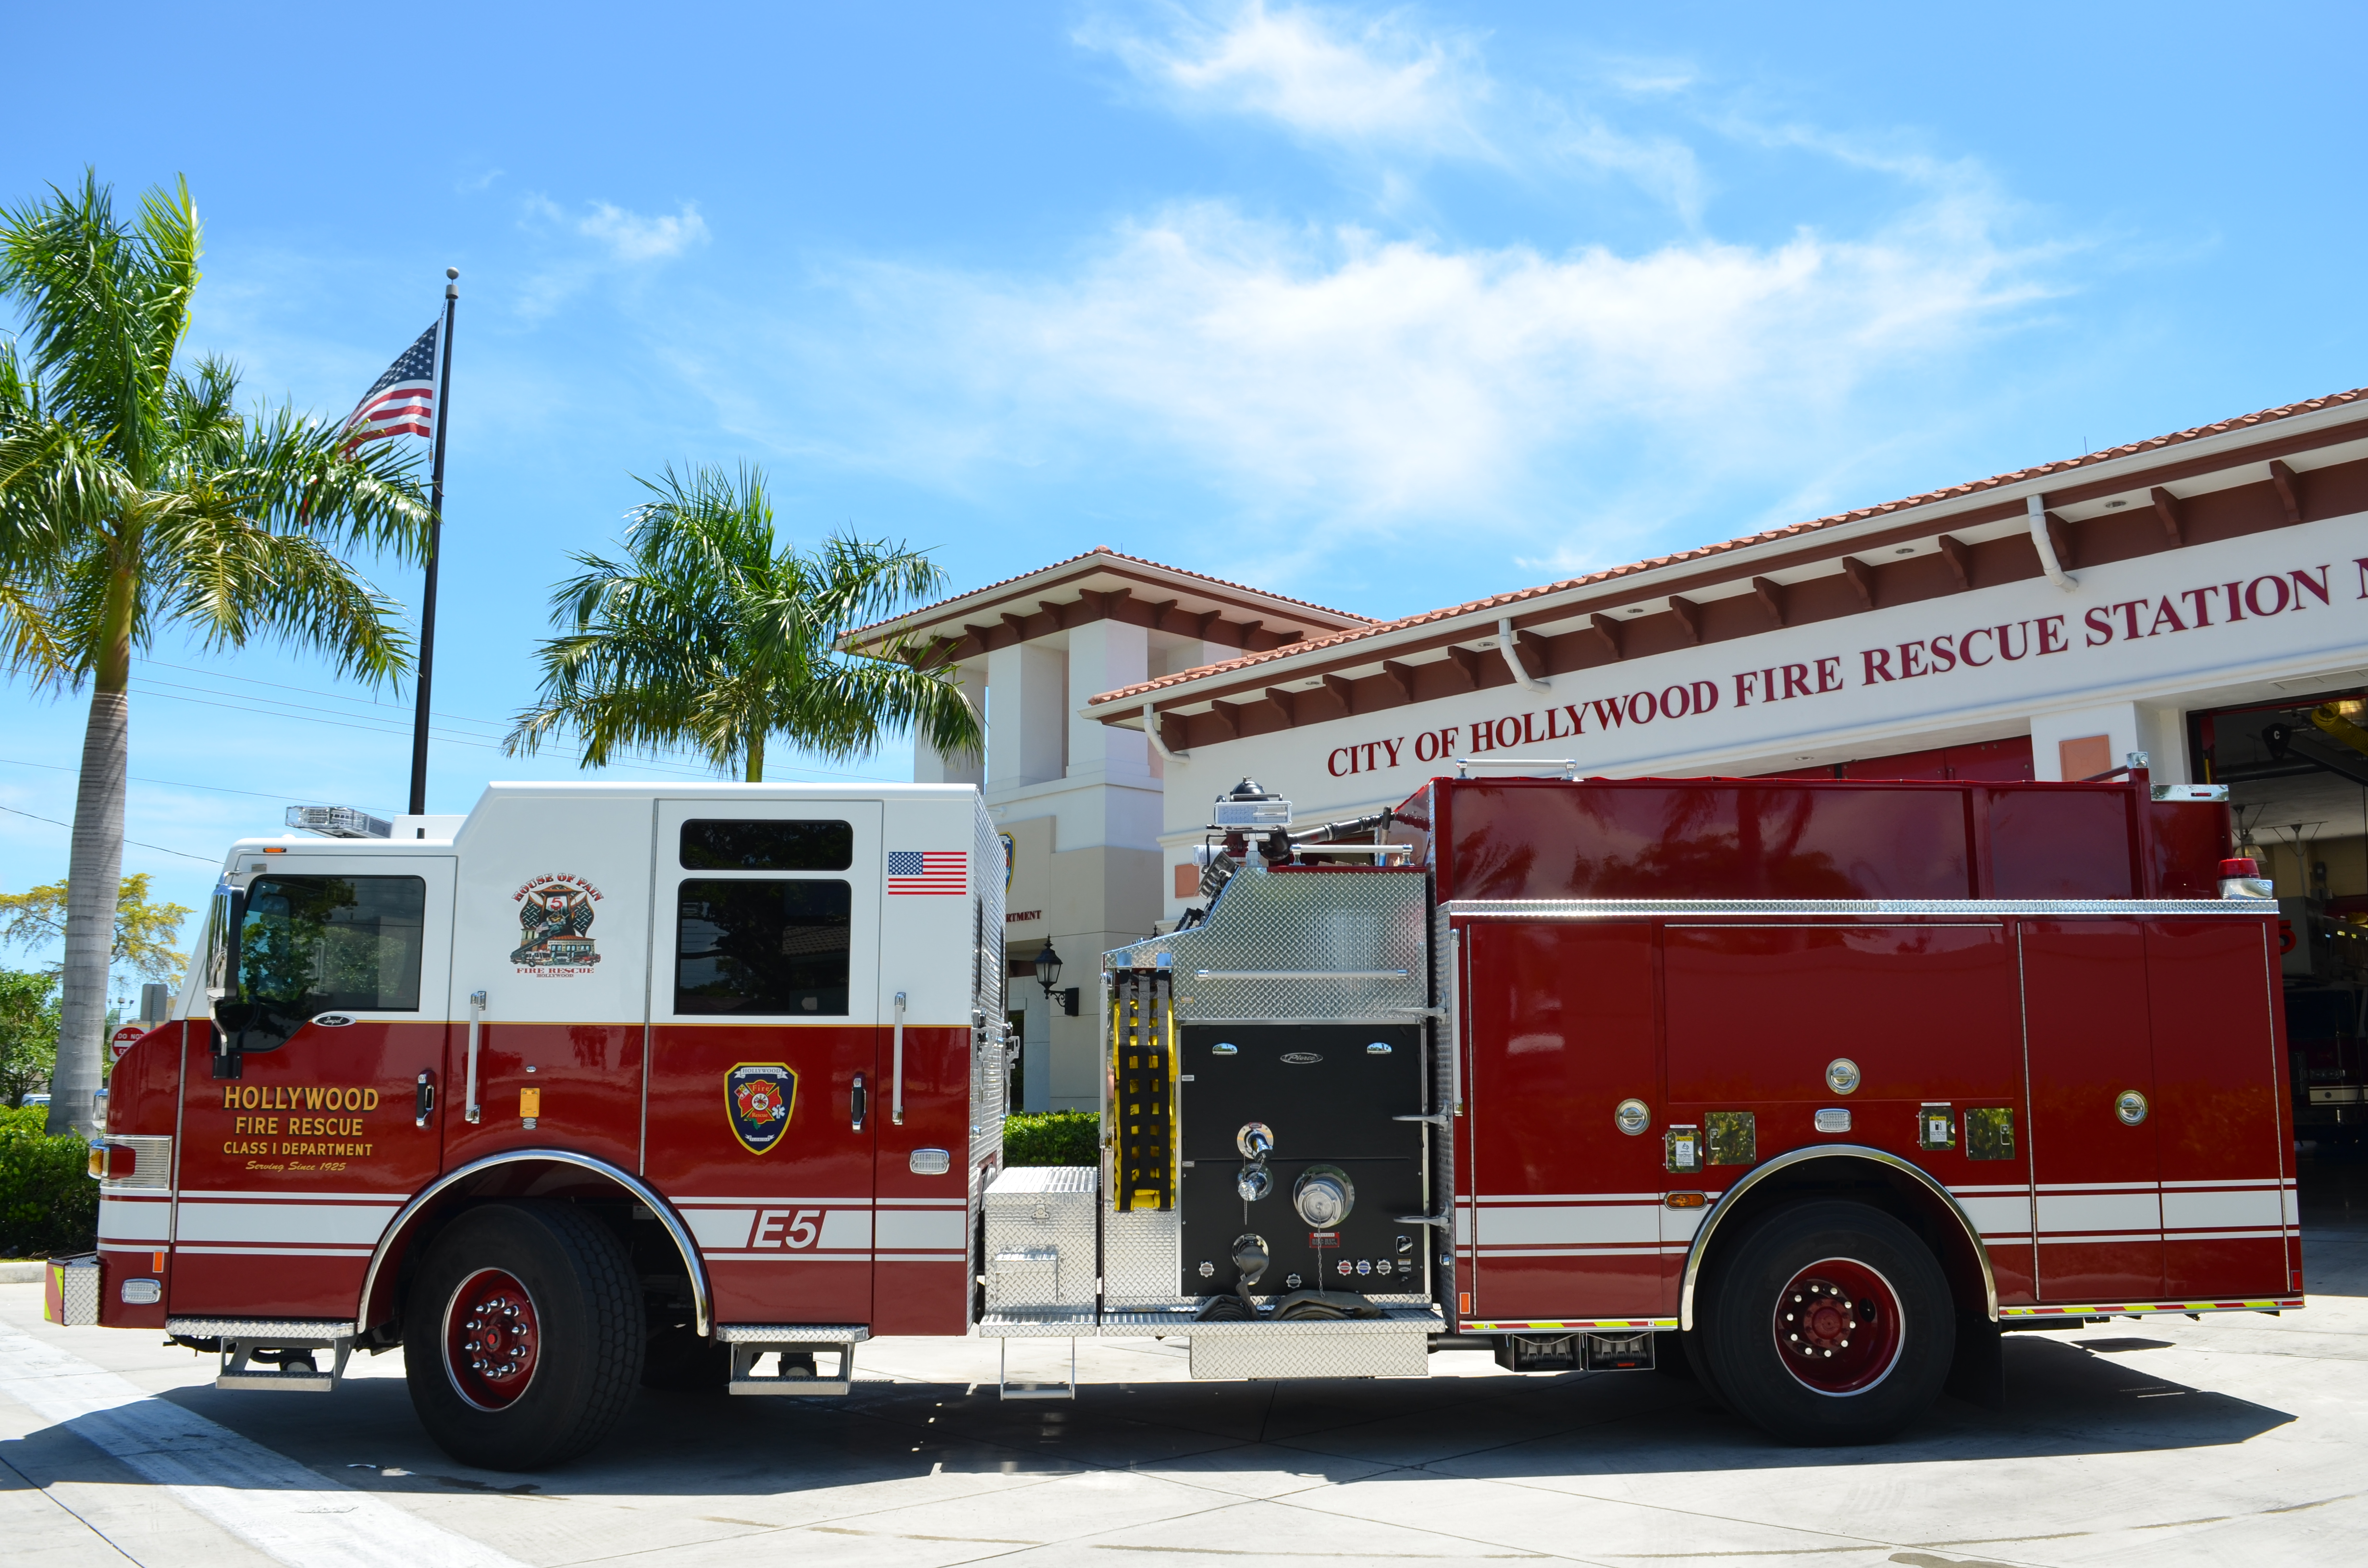 Hollywood Fire Department Fire Truck outside a city rescue station